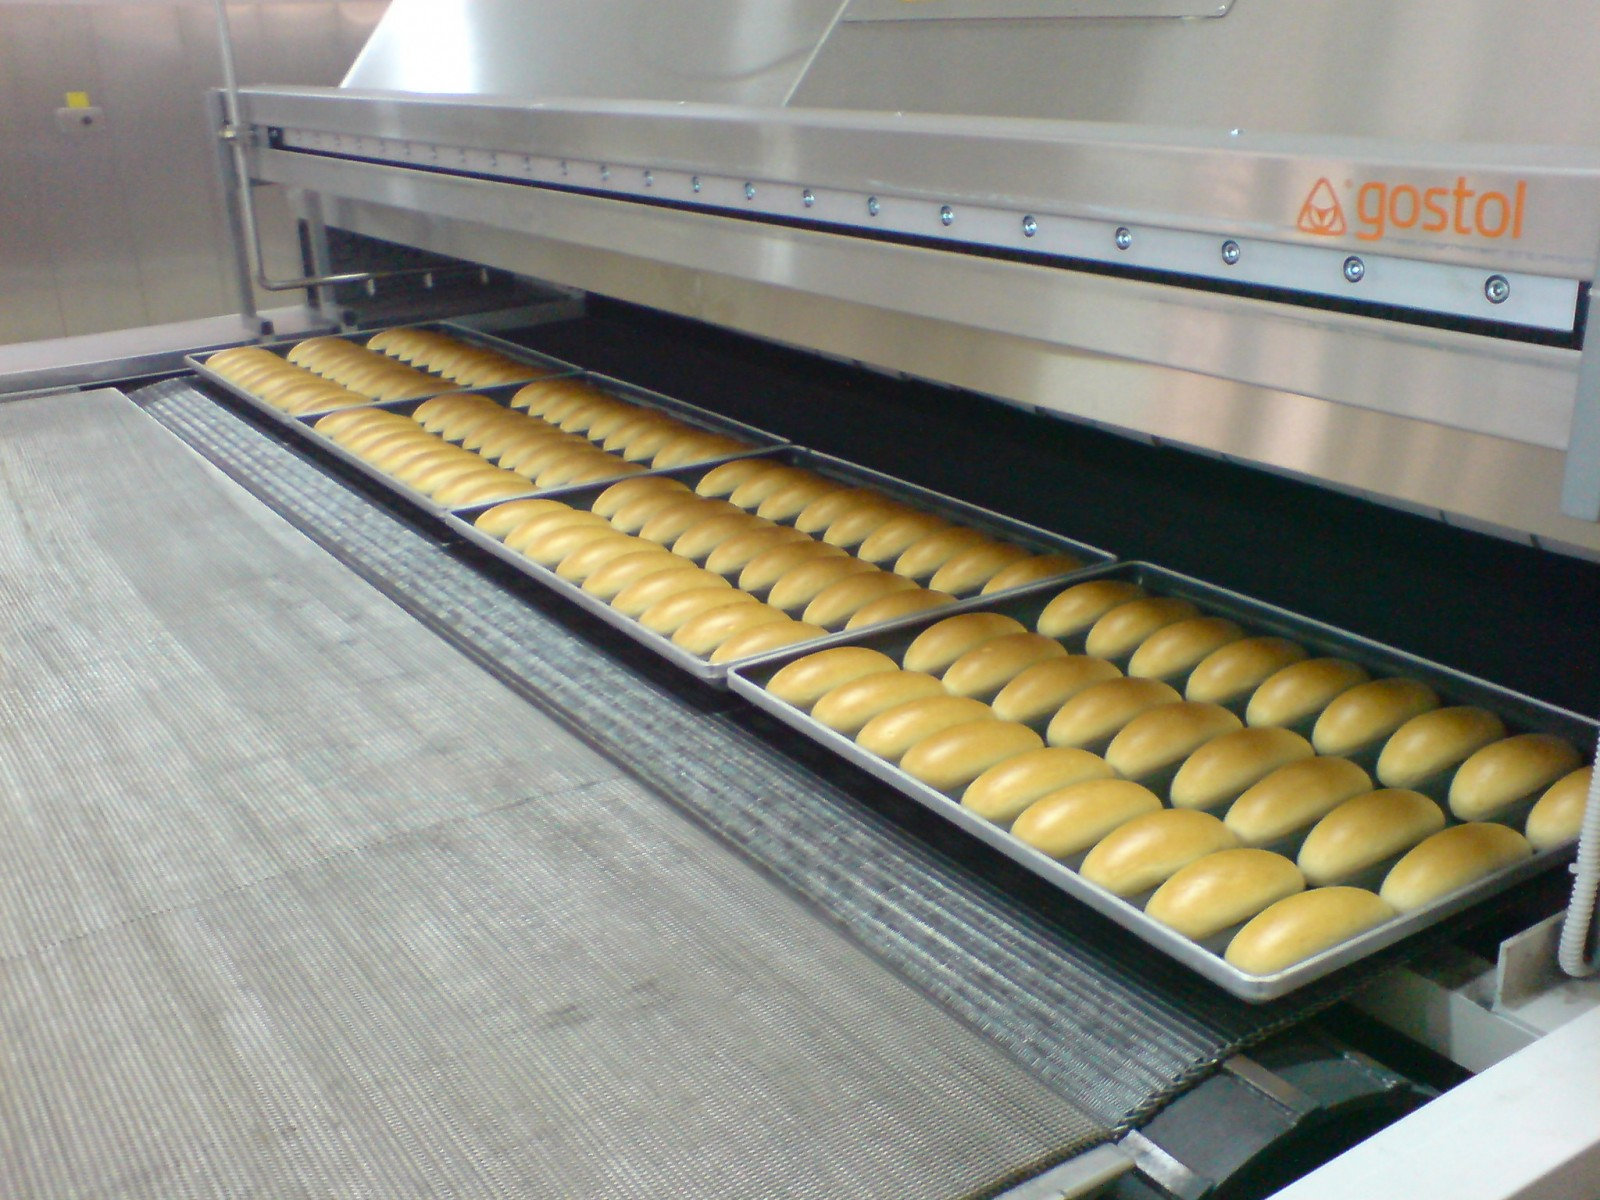 Lines for other types of bread